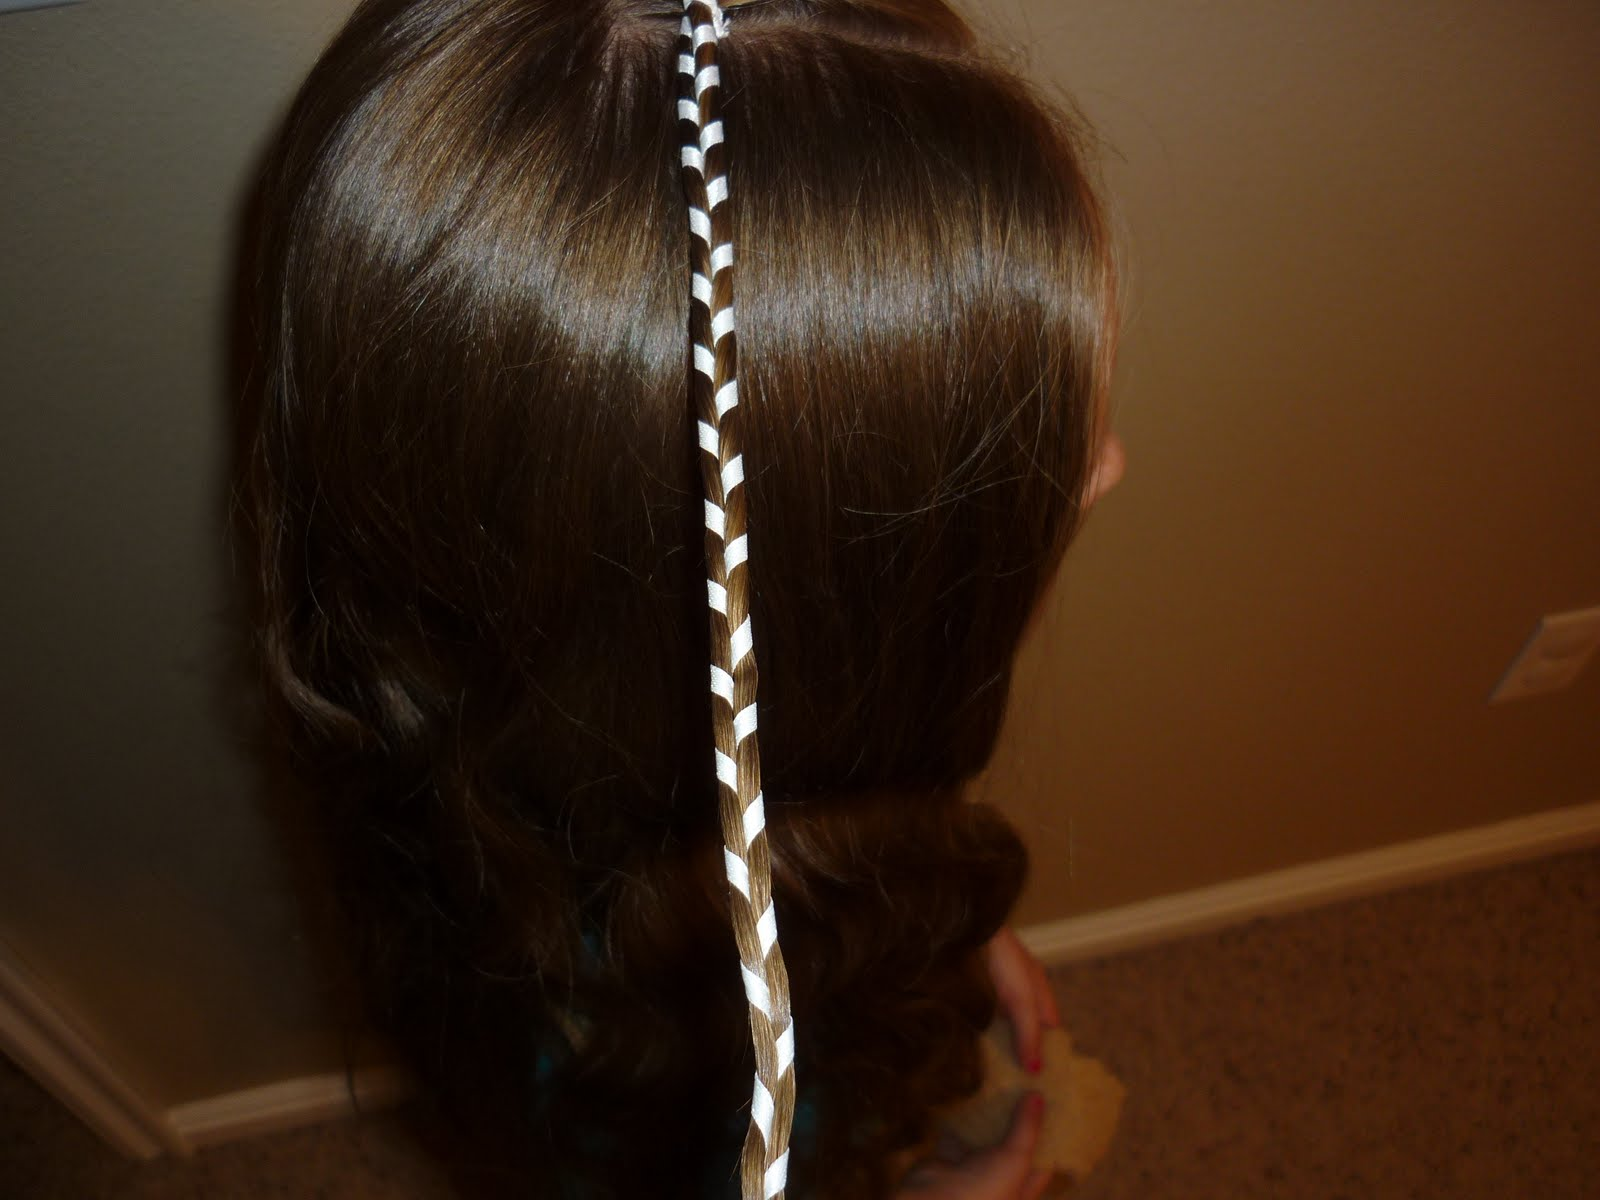 Hairstyles For Girls: Ribbon Braid - Part 2